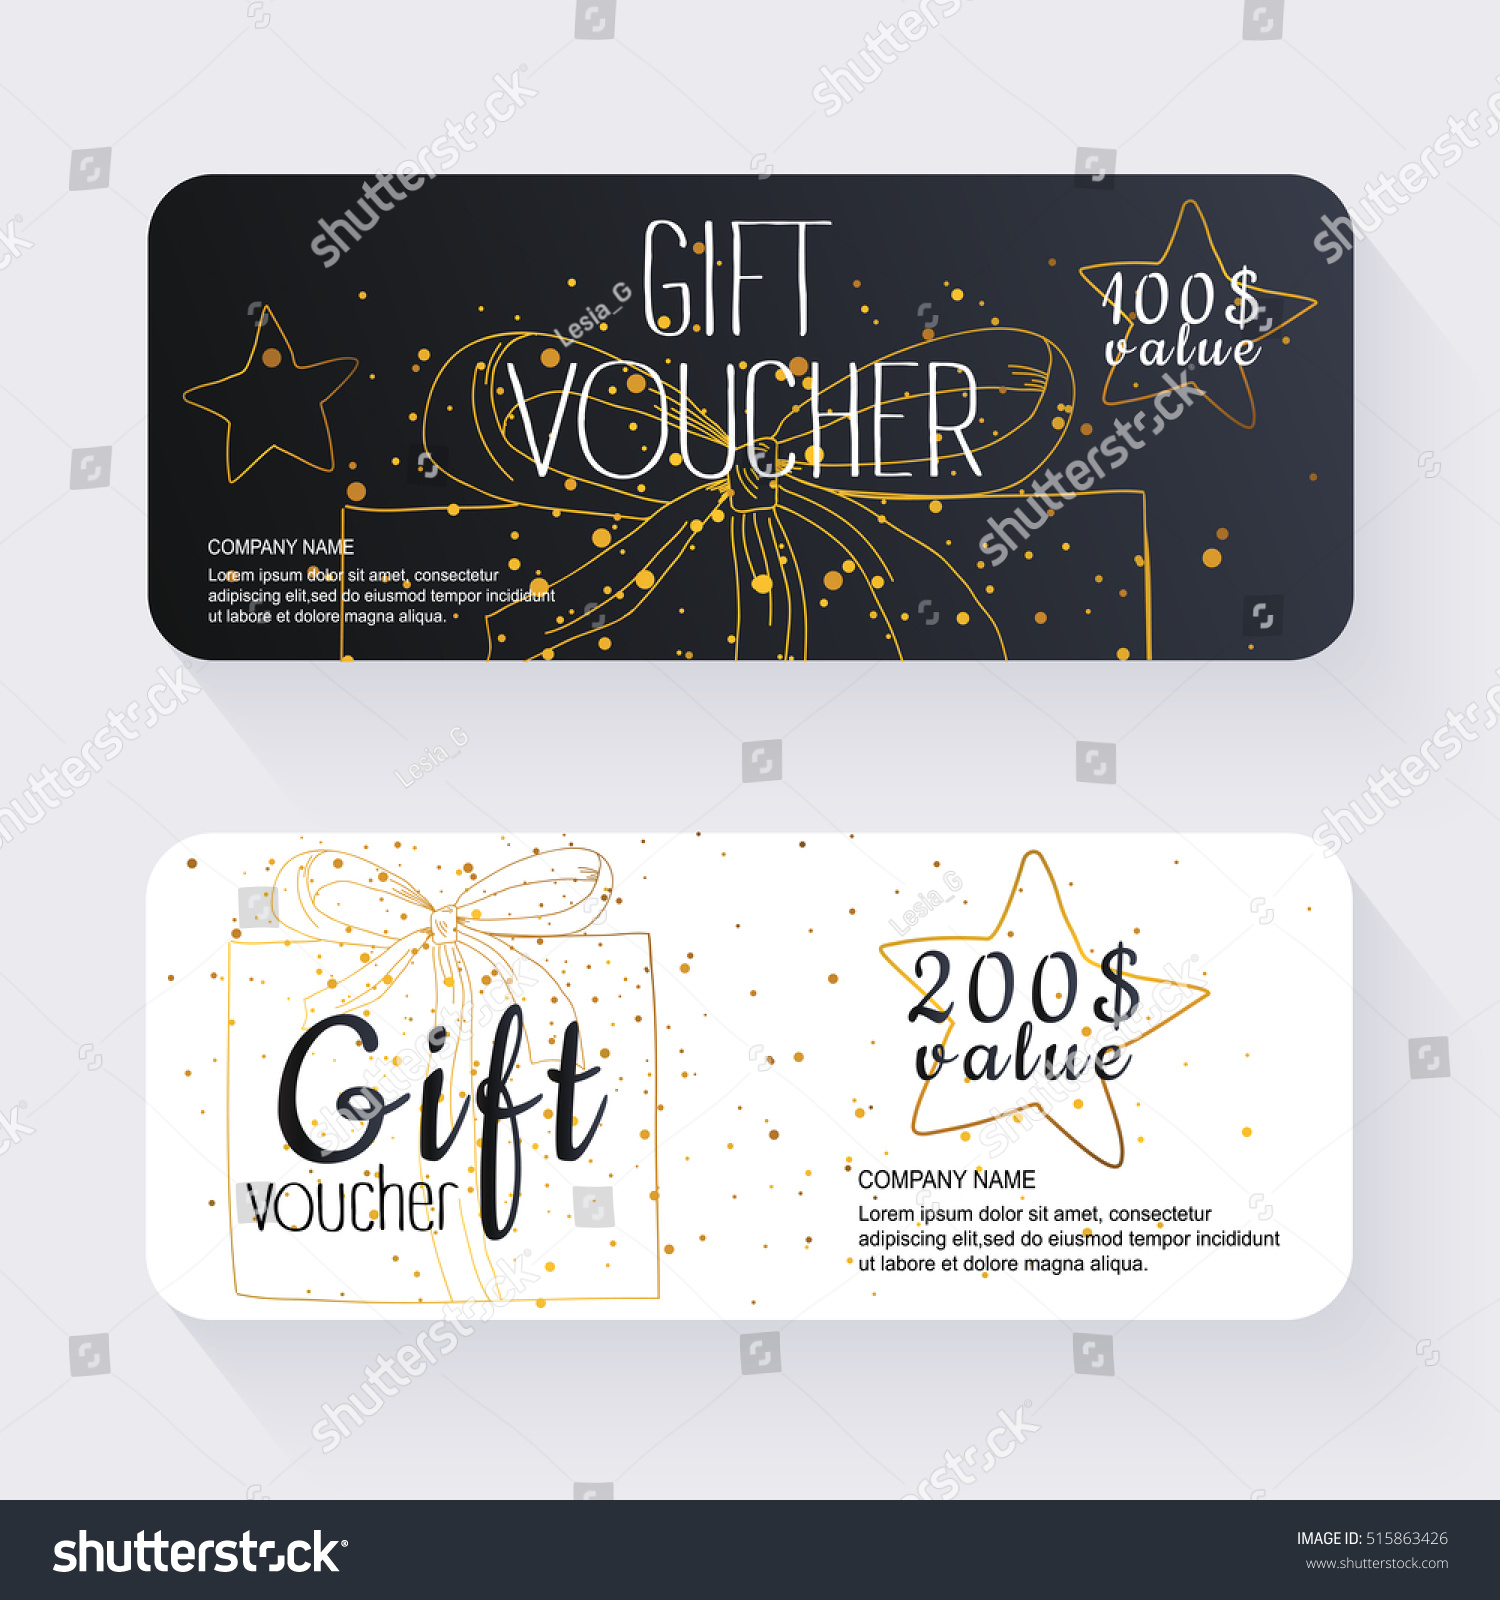 Gift voucher template gold background background gift voucher template with gold background background design coupon voucher certificate invitation yelopaper Images